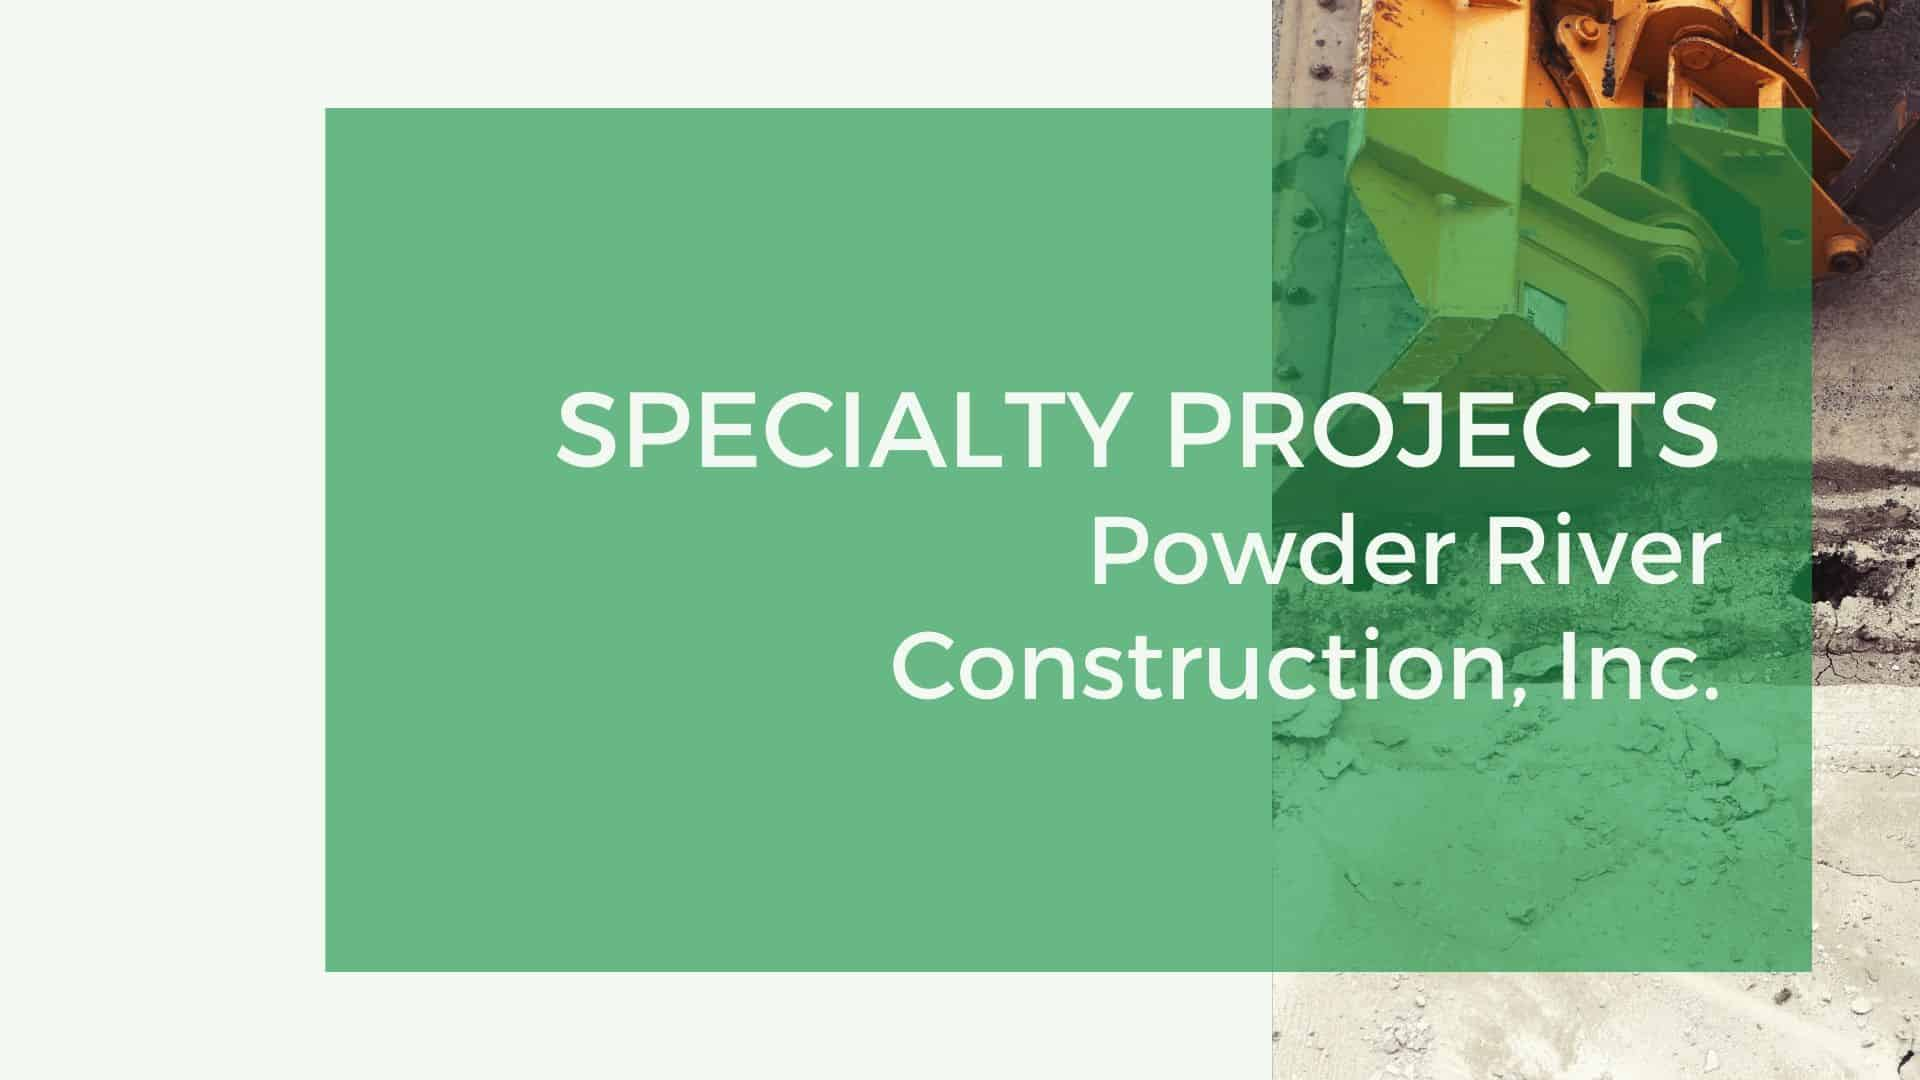 prc speciality projects